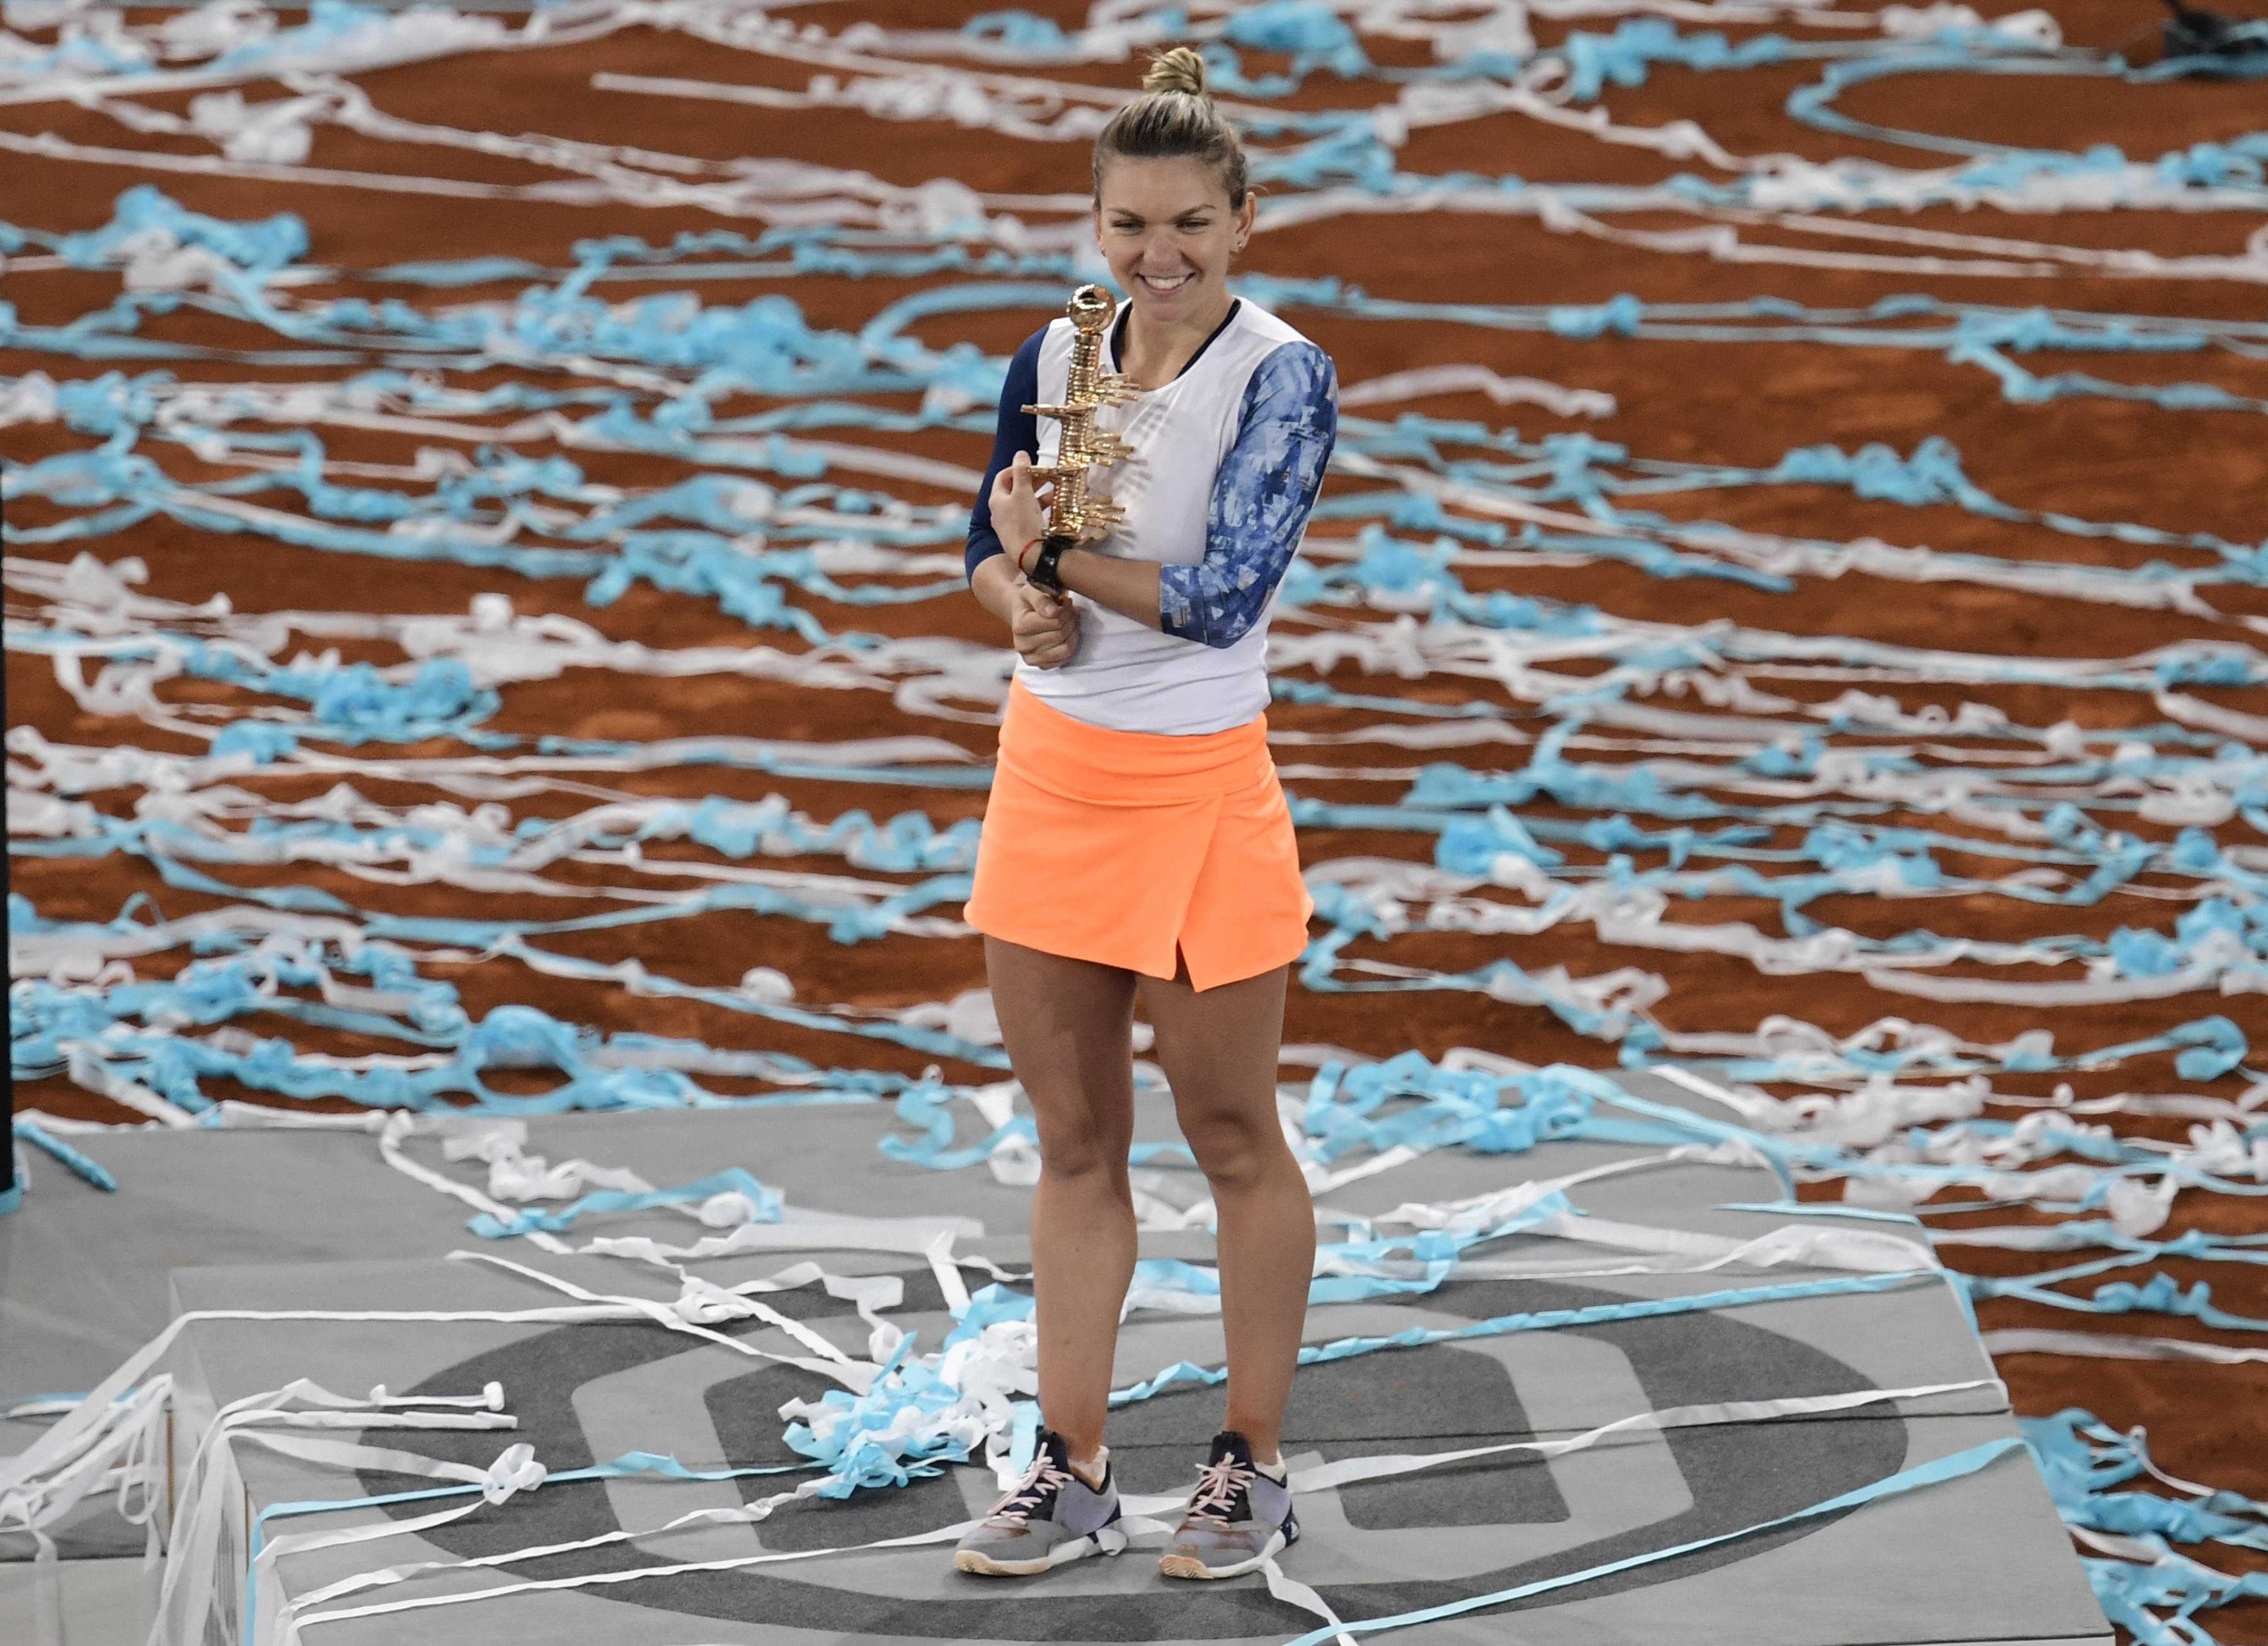 Romanian tennis player Simona Halep poses with her trophy as she celebrates her victory over French tennis player Kristina Mladenovic after the WTA Madrid Open final in Madrid, on May 13, 2017. Halep won 7-5, 6-7 and 6-2. / AFP PHOTO / JAVIER SORIANO (Photo credit should read JAVIER SORIANO/AFP/Getty Images)